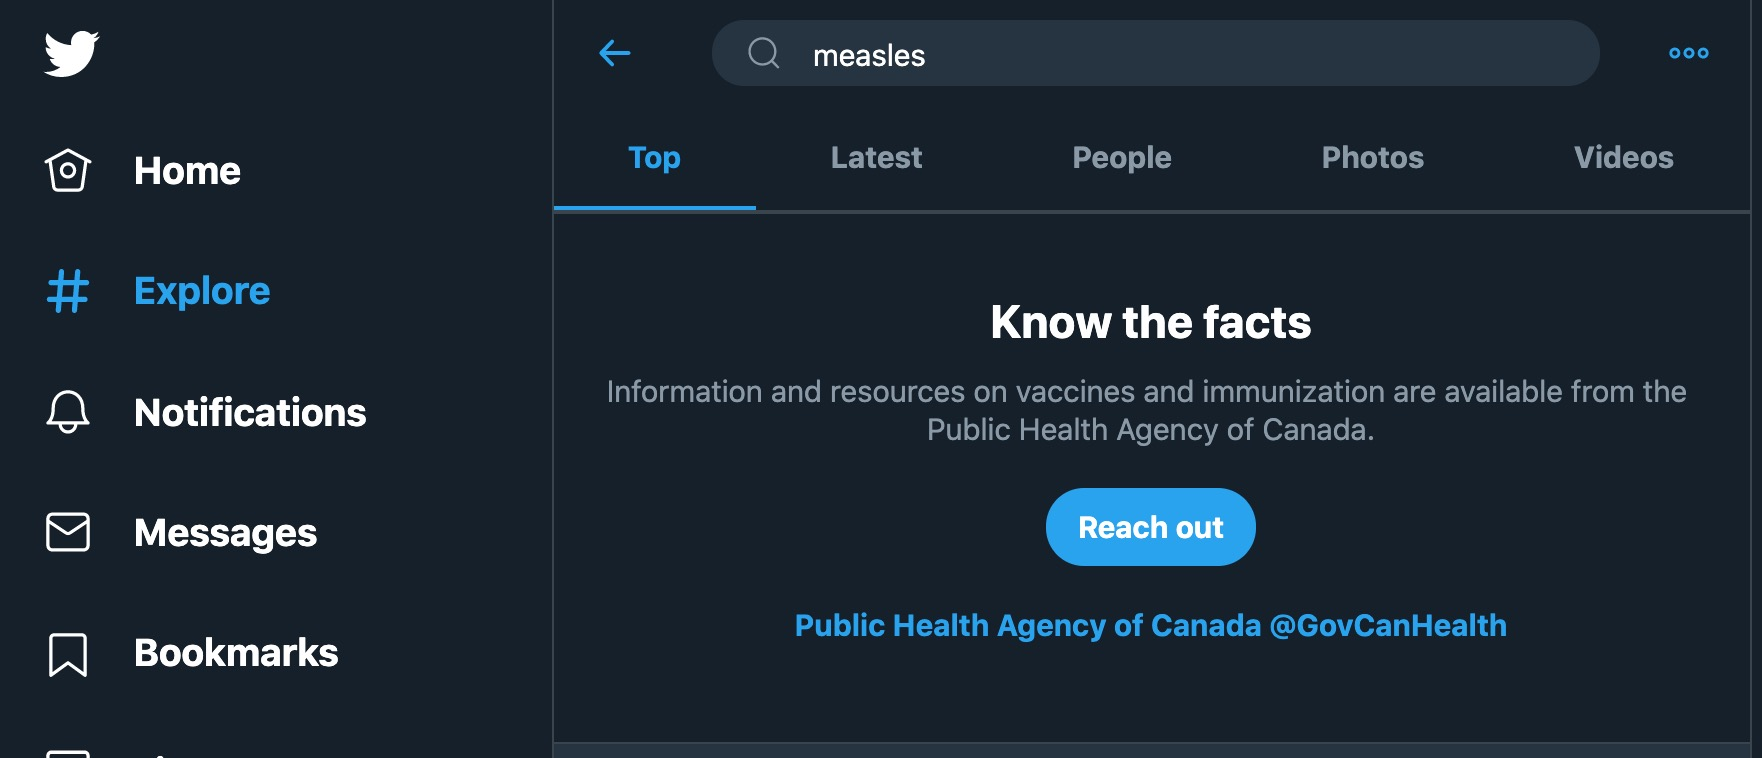 A screenshot of a twitter search for measles returns a note directing viewers to trustworthy resources, such as government agency websites